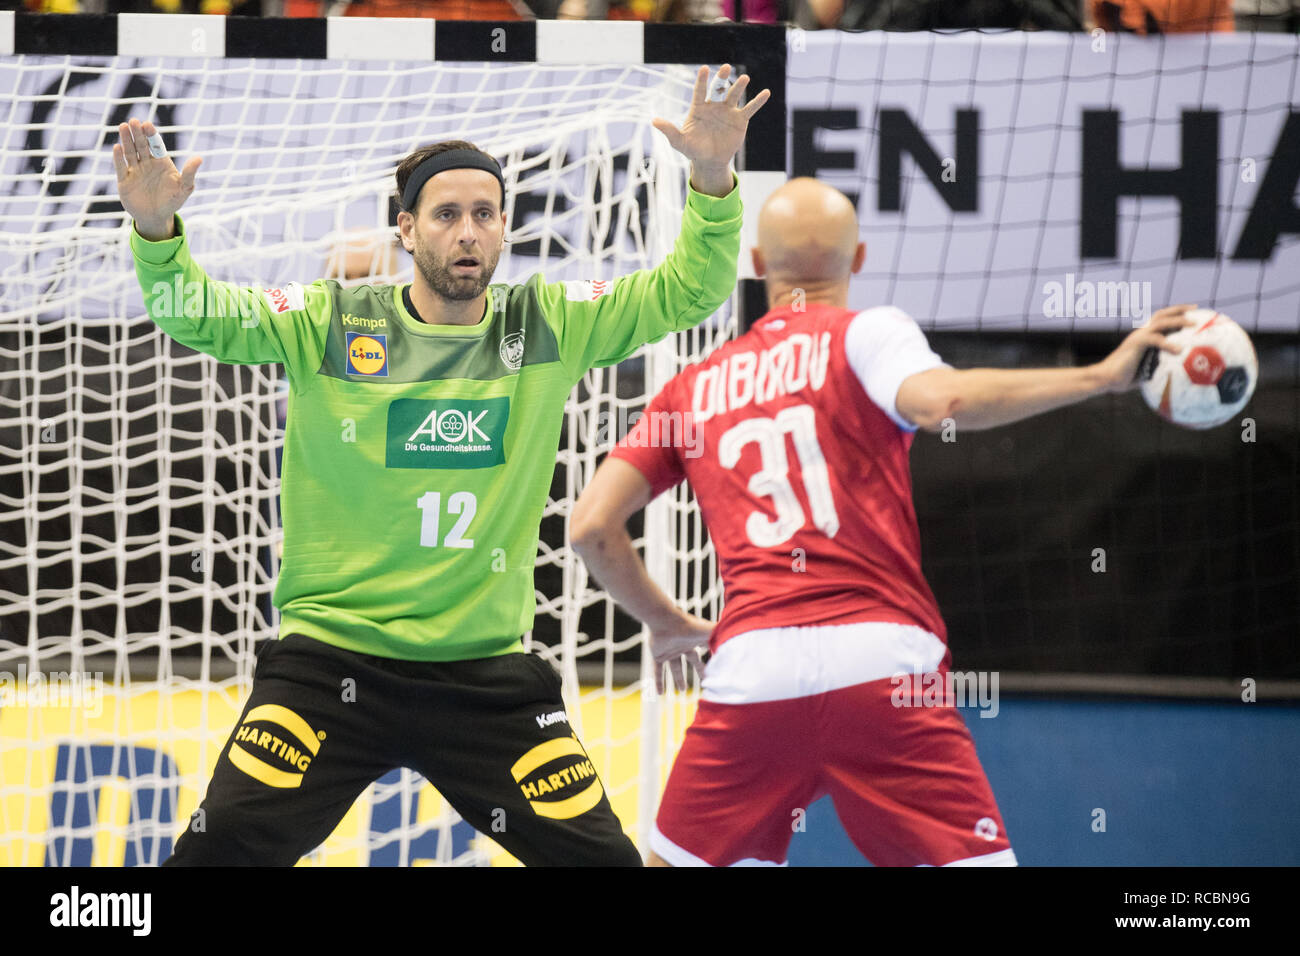 goalkeeper Silvio HEINEVETTER (left, GER) in a seven-meter duel versus Timur DIBIROV (RUS), seven-yard, penalty throw, half figure, half figure, landscape, preliminary round Group A, Russia (RUS) - Germany (GER) 22:22, on 14.01.2019 in Berlin / Germany. Handball World Cup 2019, from 10.01. - 27.01.2019 in Germany and Denmark. | Usage worldwide Stock Photo